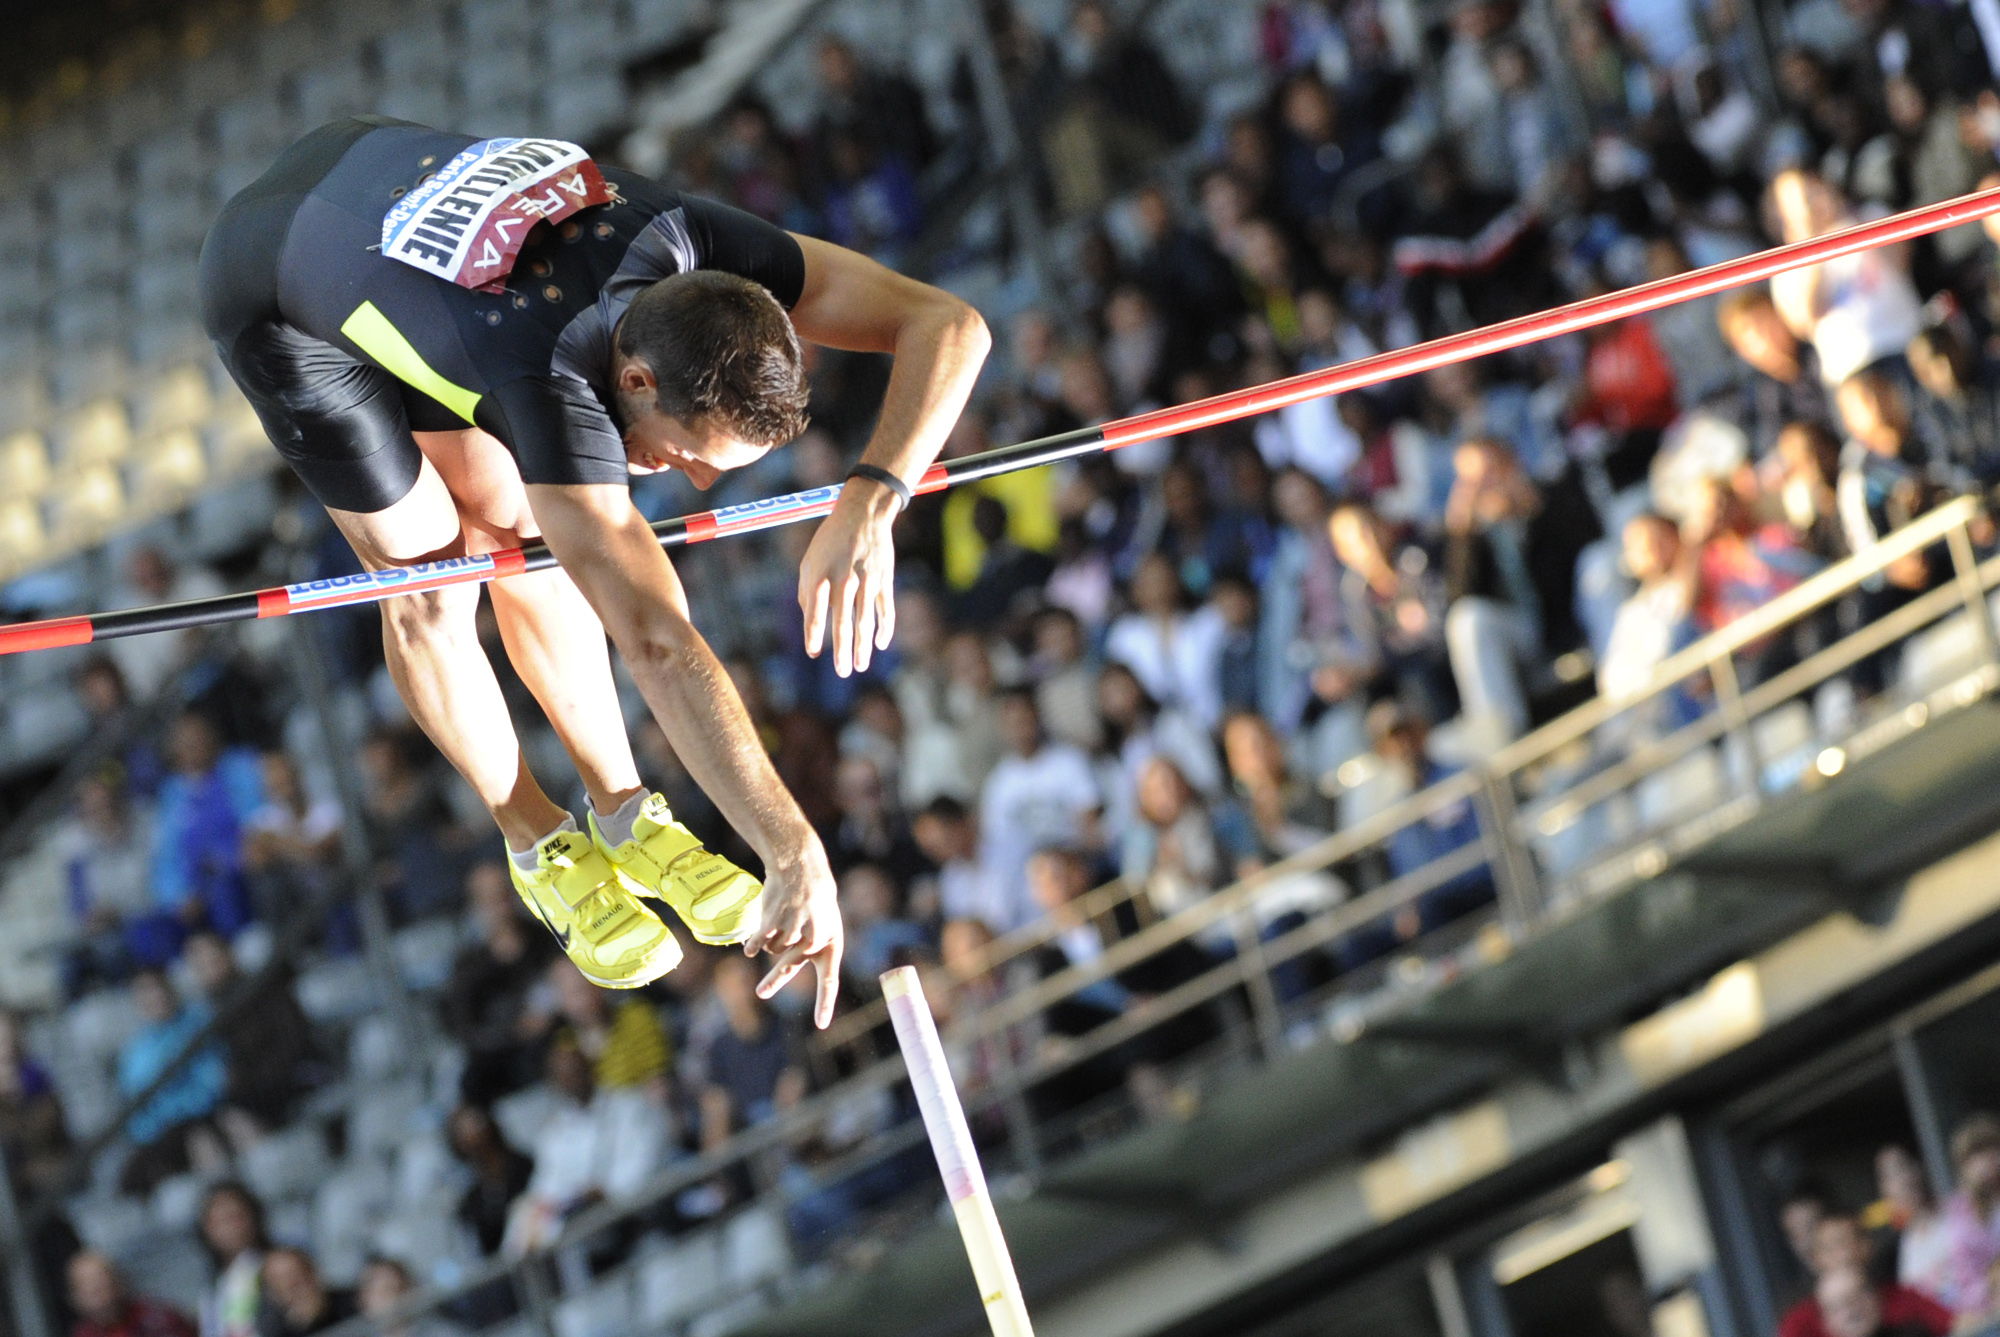 Renaud Lavillenie (Meeting Areva 2012, Saint-Denis, FRANCE) Copyright ALAIN GADOFFRE